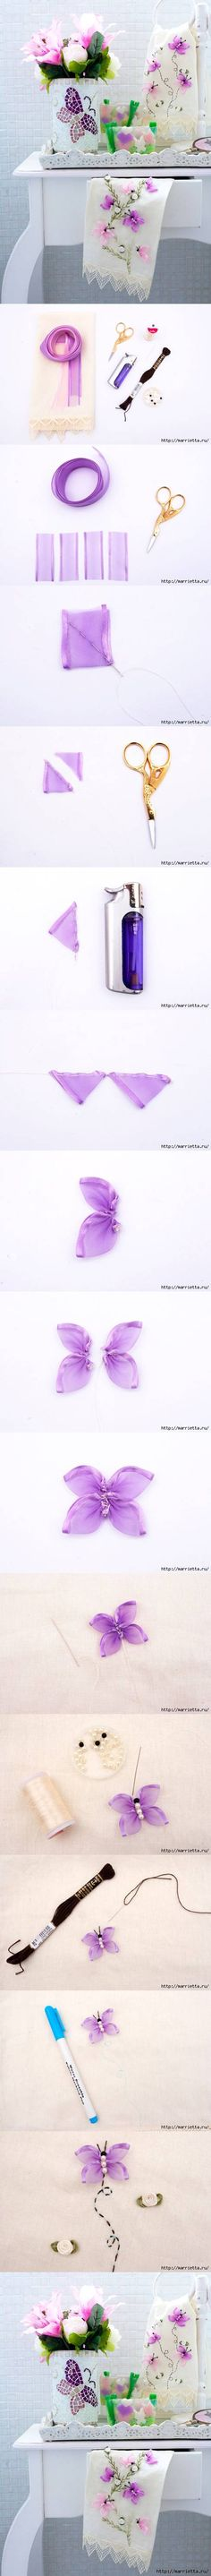 DIY Butterfly Hand Ribbon Embroidery | UsefulDIY.com